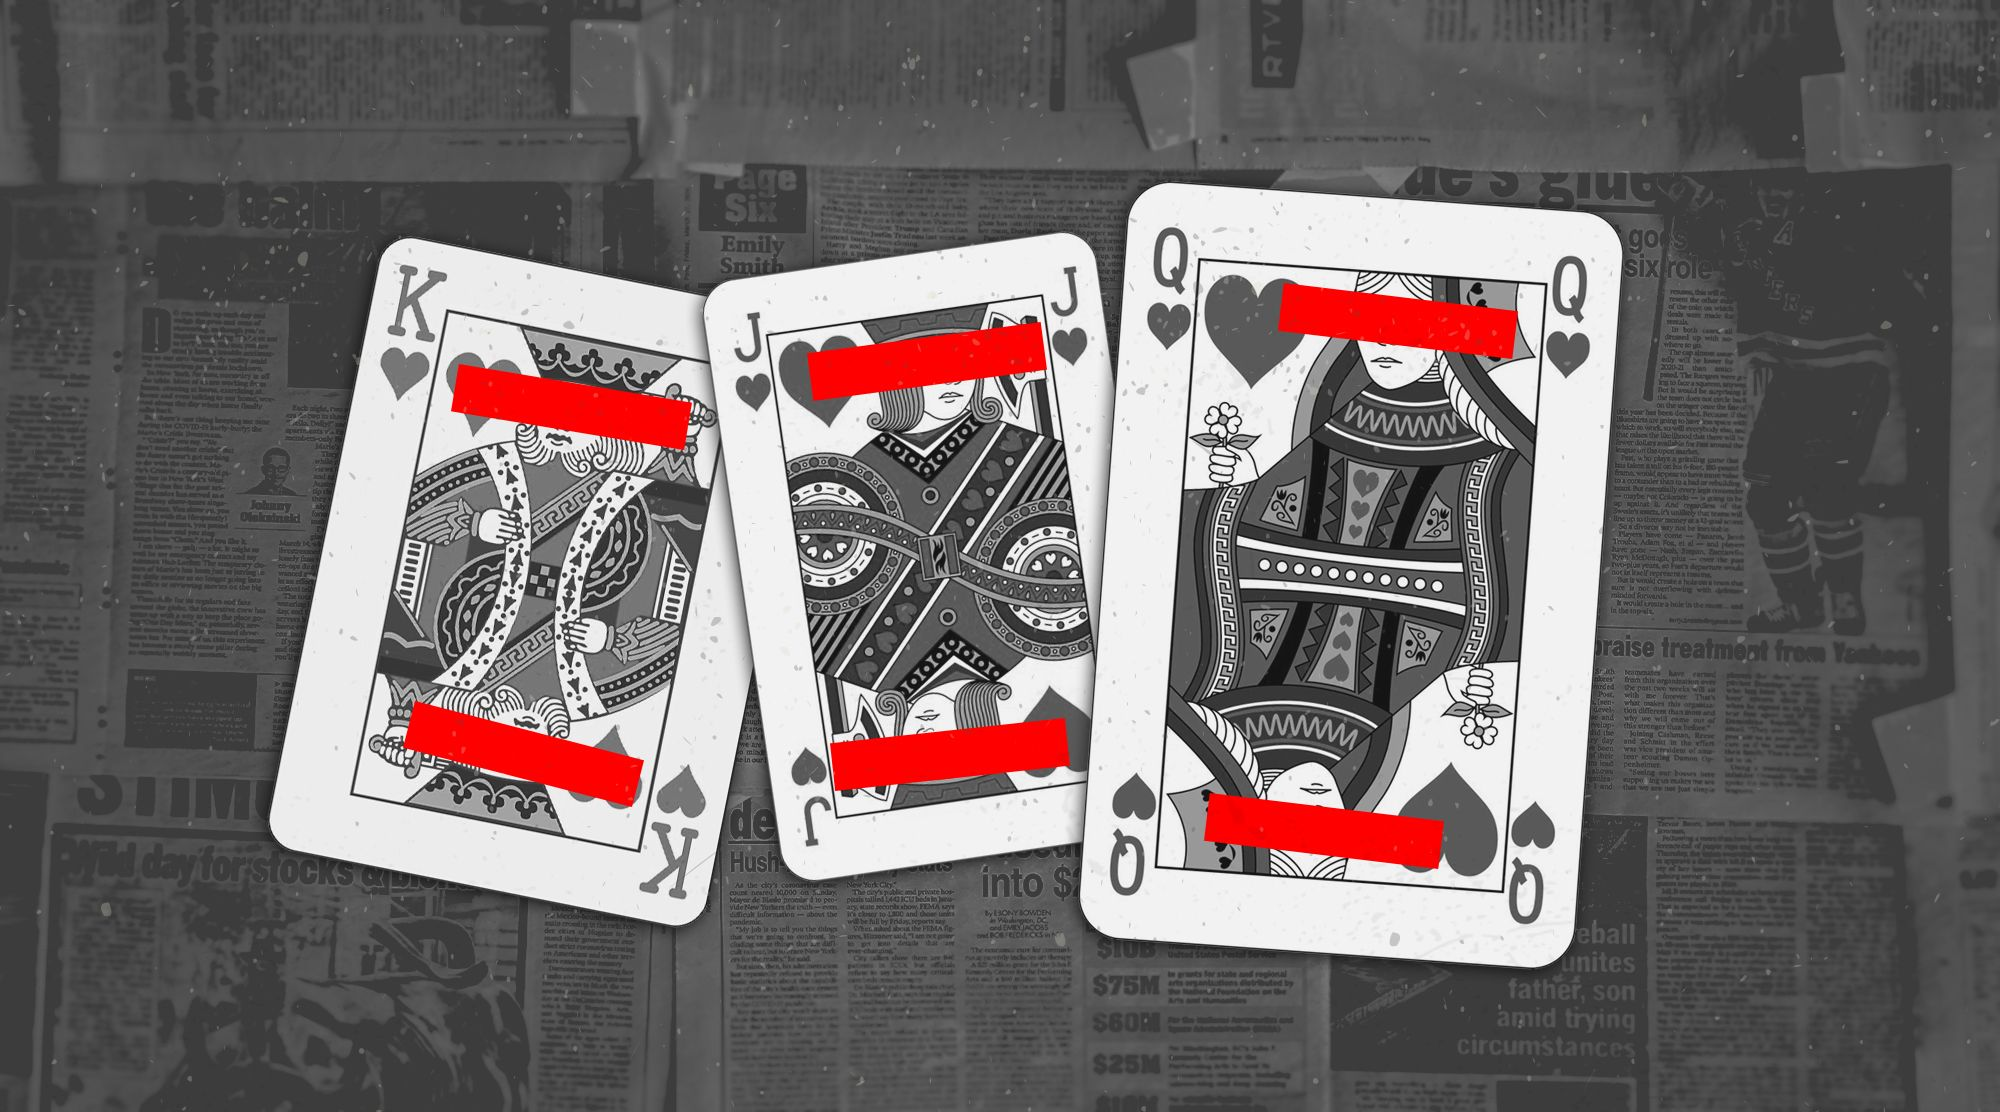 How Poker Thinking Can Help Us Unpick Fake News